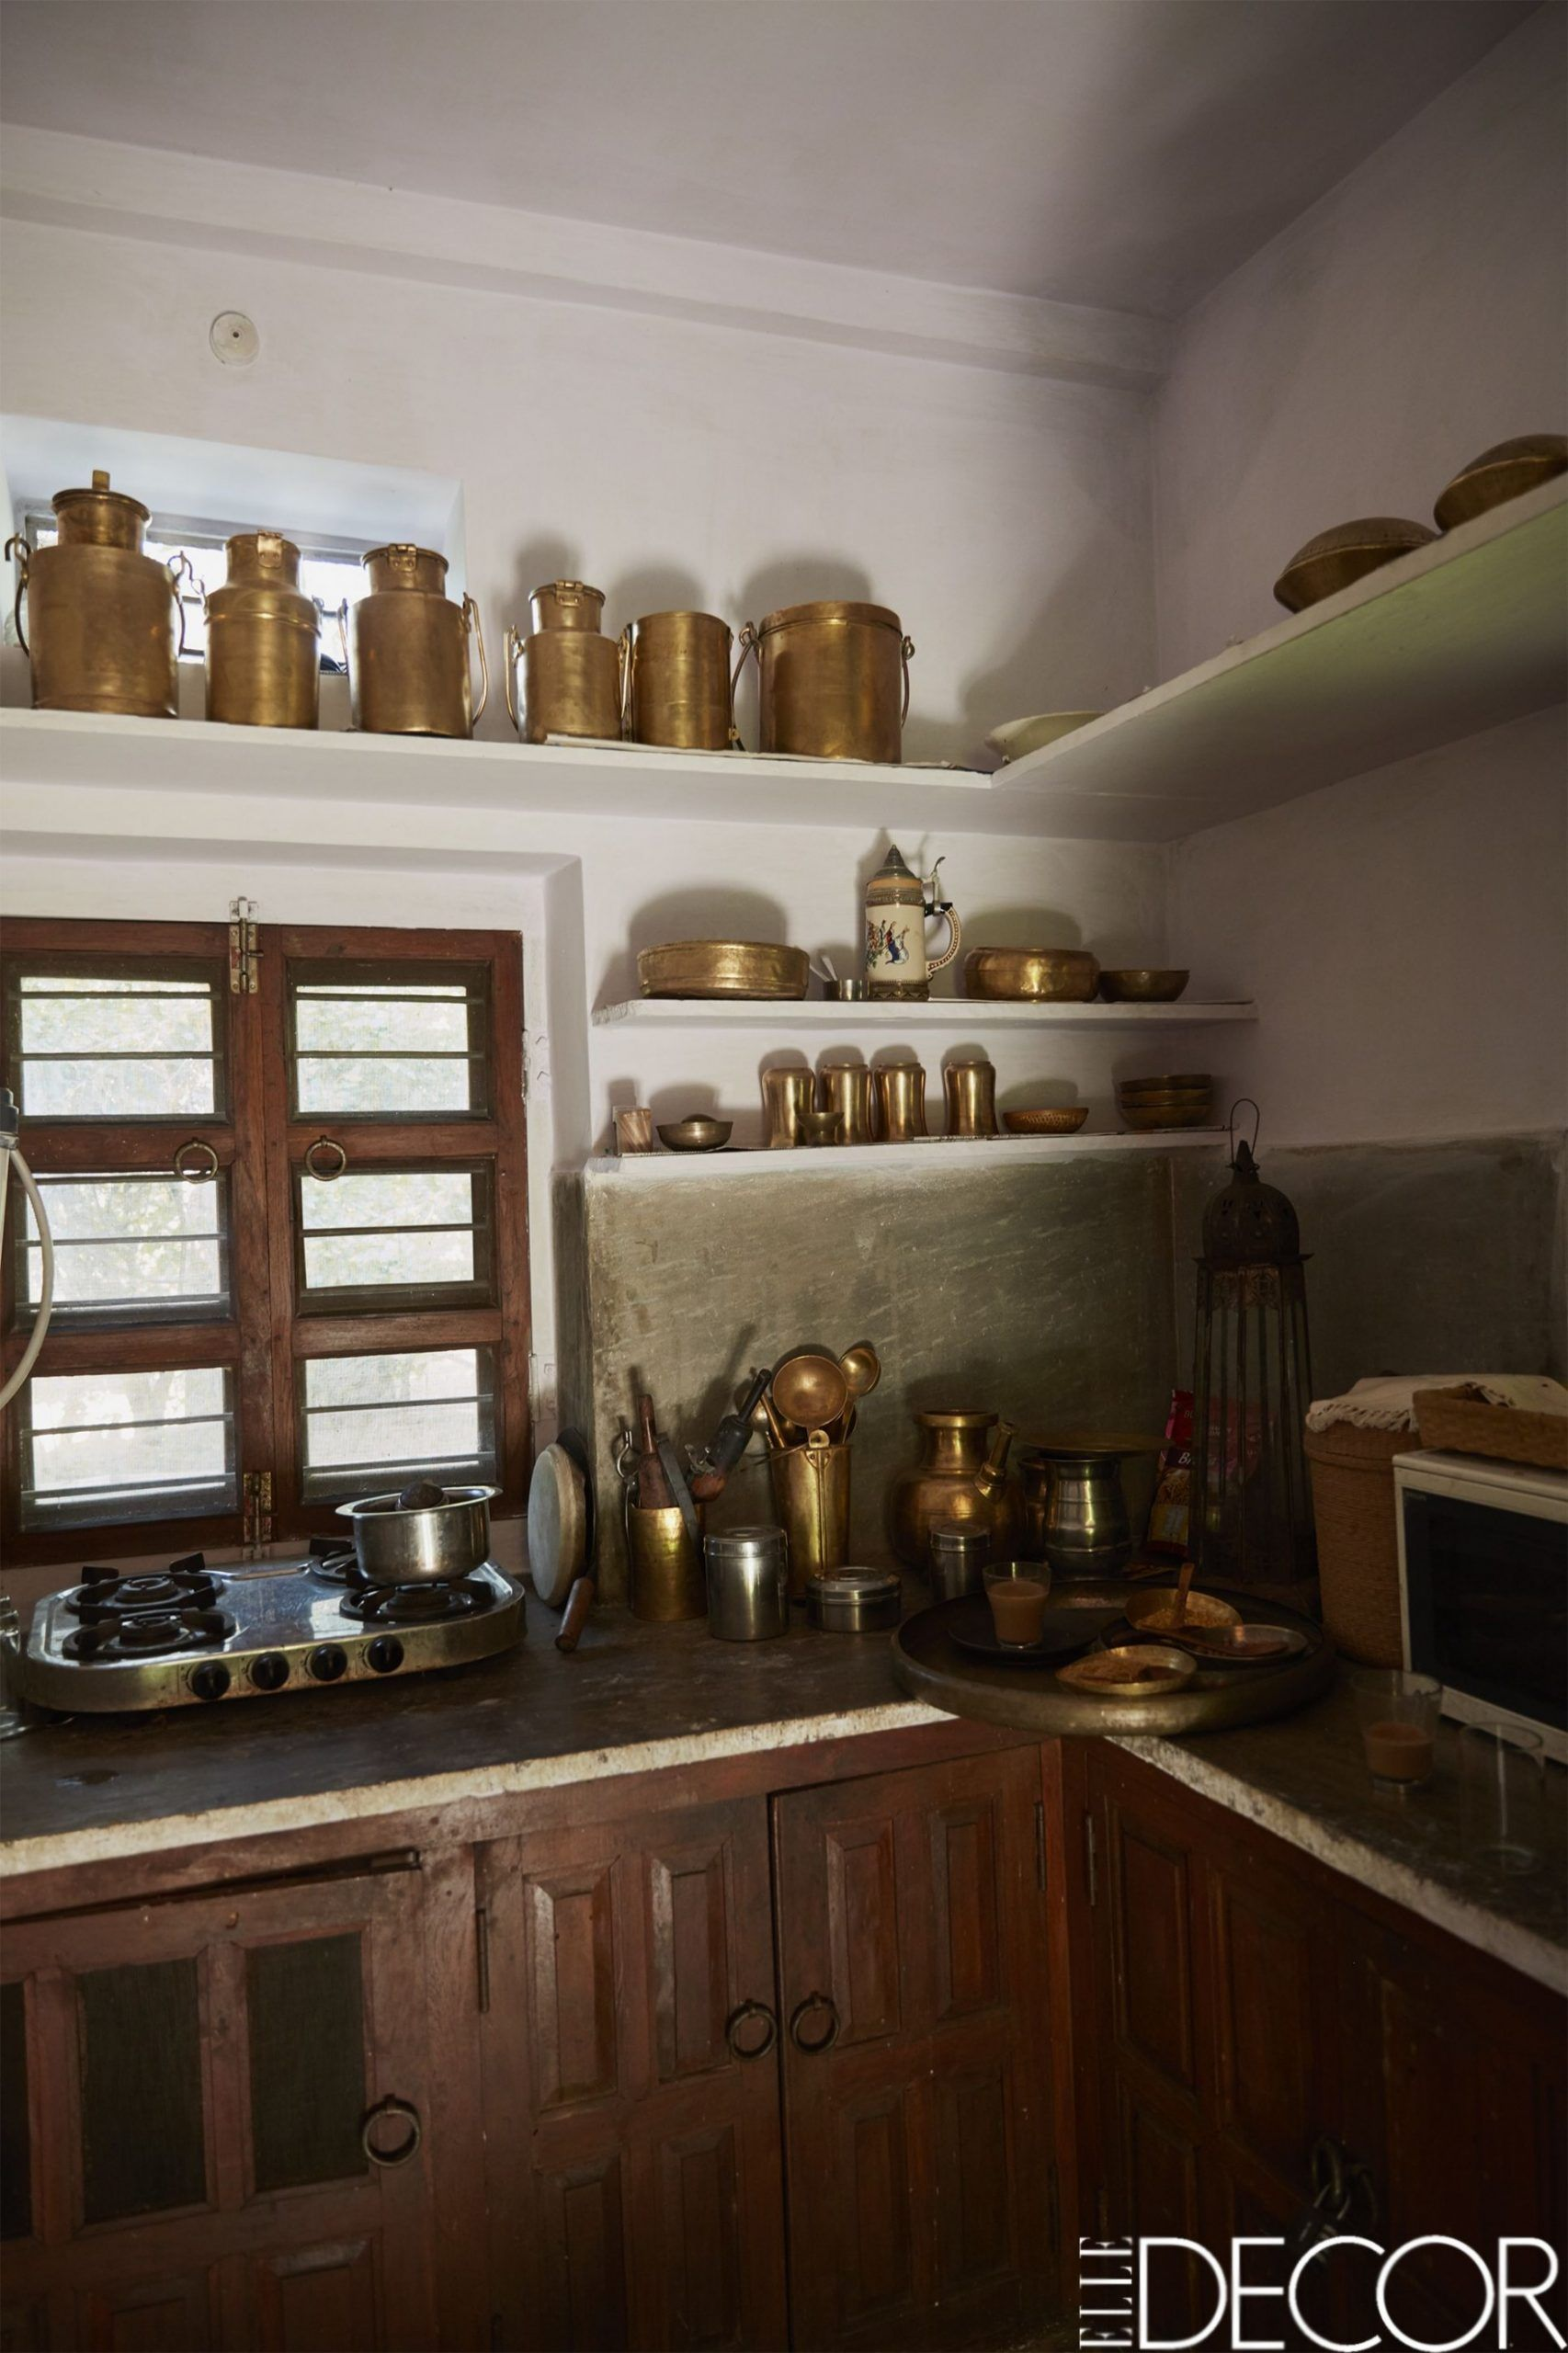 Five Facts You Never Knew About Traditional Indian Small Kitchen Design Desain Dapur Dapur Kecil Interior Dapur